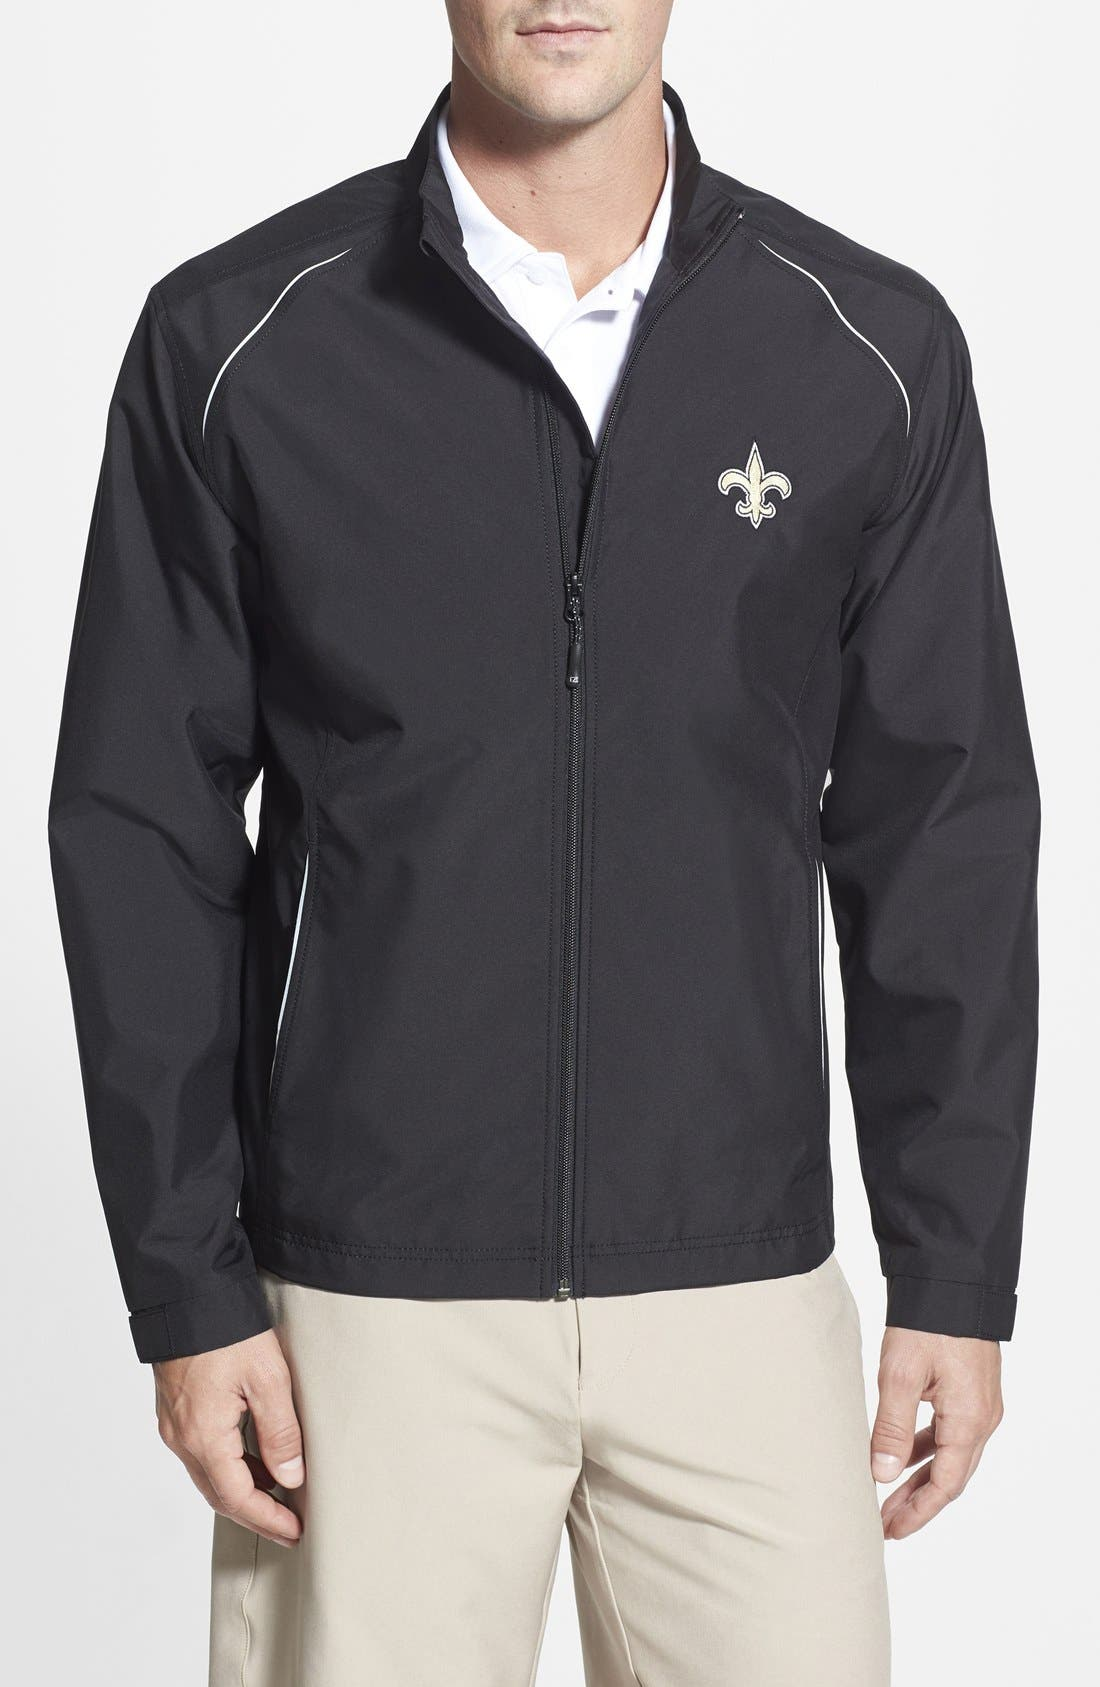 Cutter & Buck 'New Orleans Saints - Beacon' WeatherTec Wind & Water Resistant Jacket (Big & Tall)